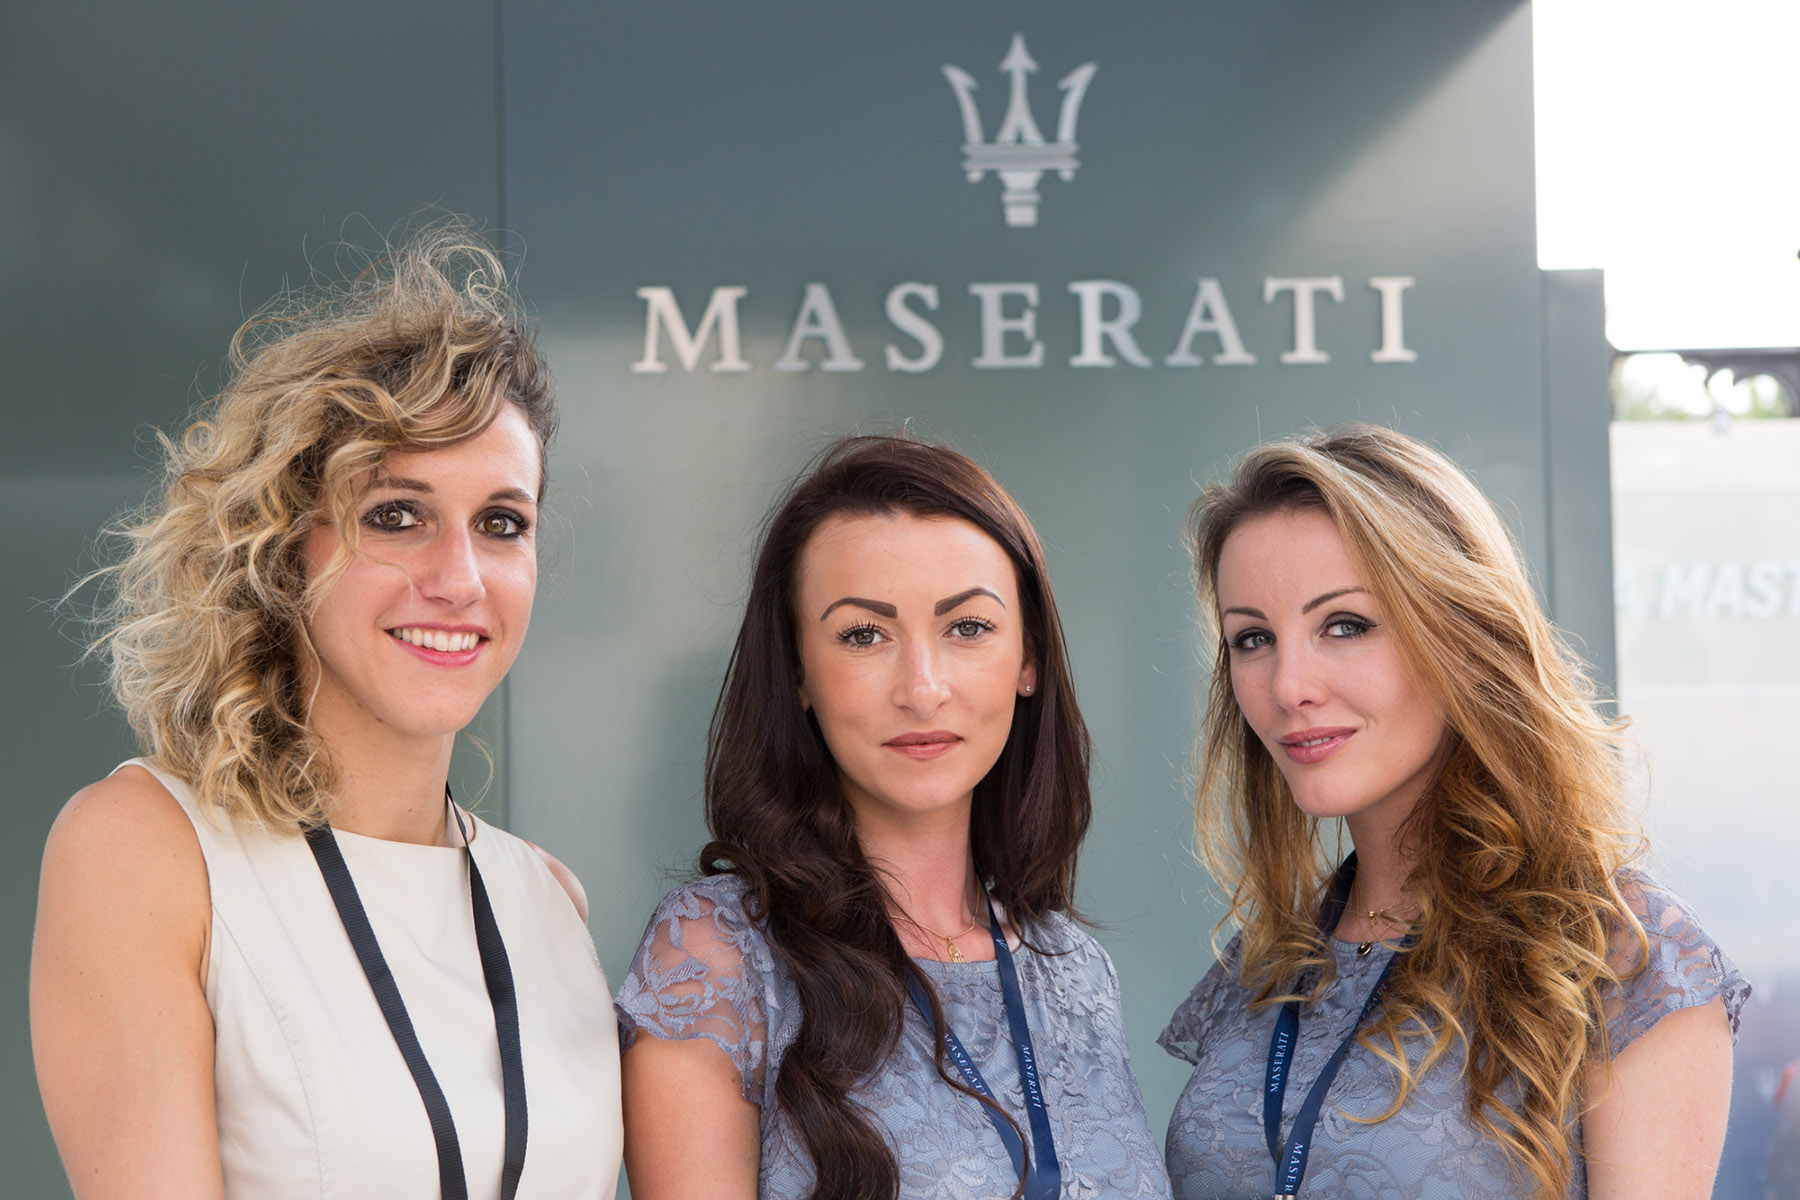 Sales ladies of Maserati at Art Dubai by Loesje Kessels Fashion Photographer